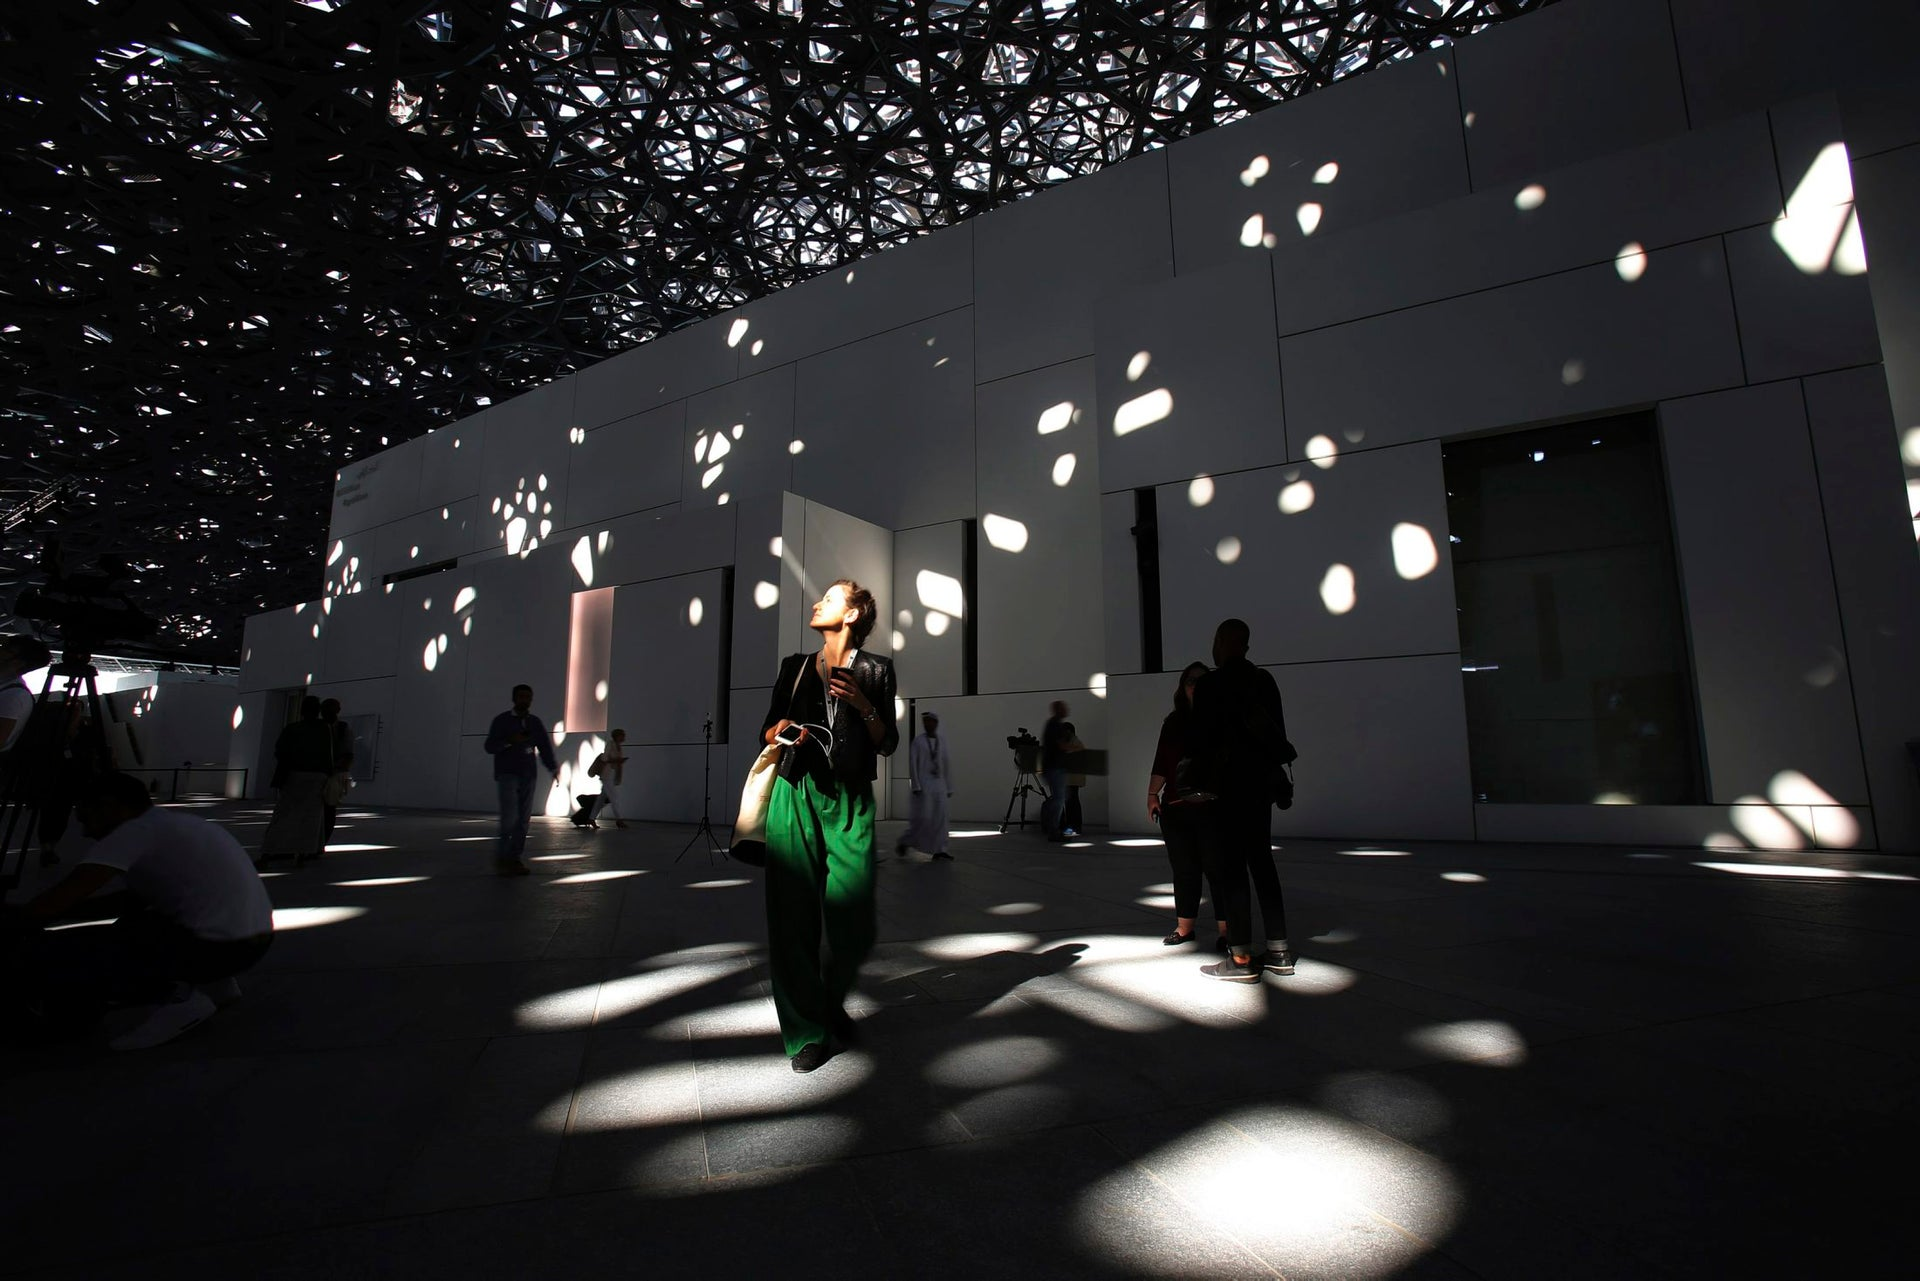 A journalist walks under the lights coming through of the dome at the Louvre Abu Dhabi, United Arab Emirates, Nov. 6, 2017. The Louvre Abu Dhabi is preparing its grand opening _ unveiling its treasures to the world after a decade-long wait and questions over laborers' rights. The museum, which opens on Saturday to the public, encompasses work from both the East and West.